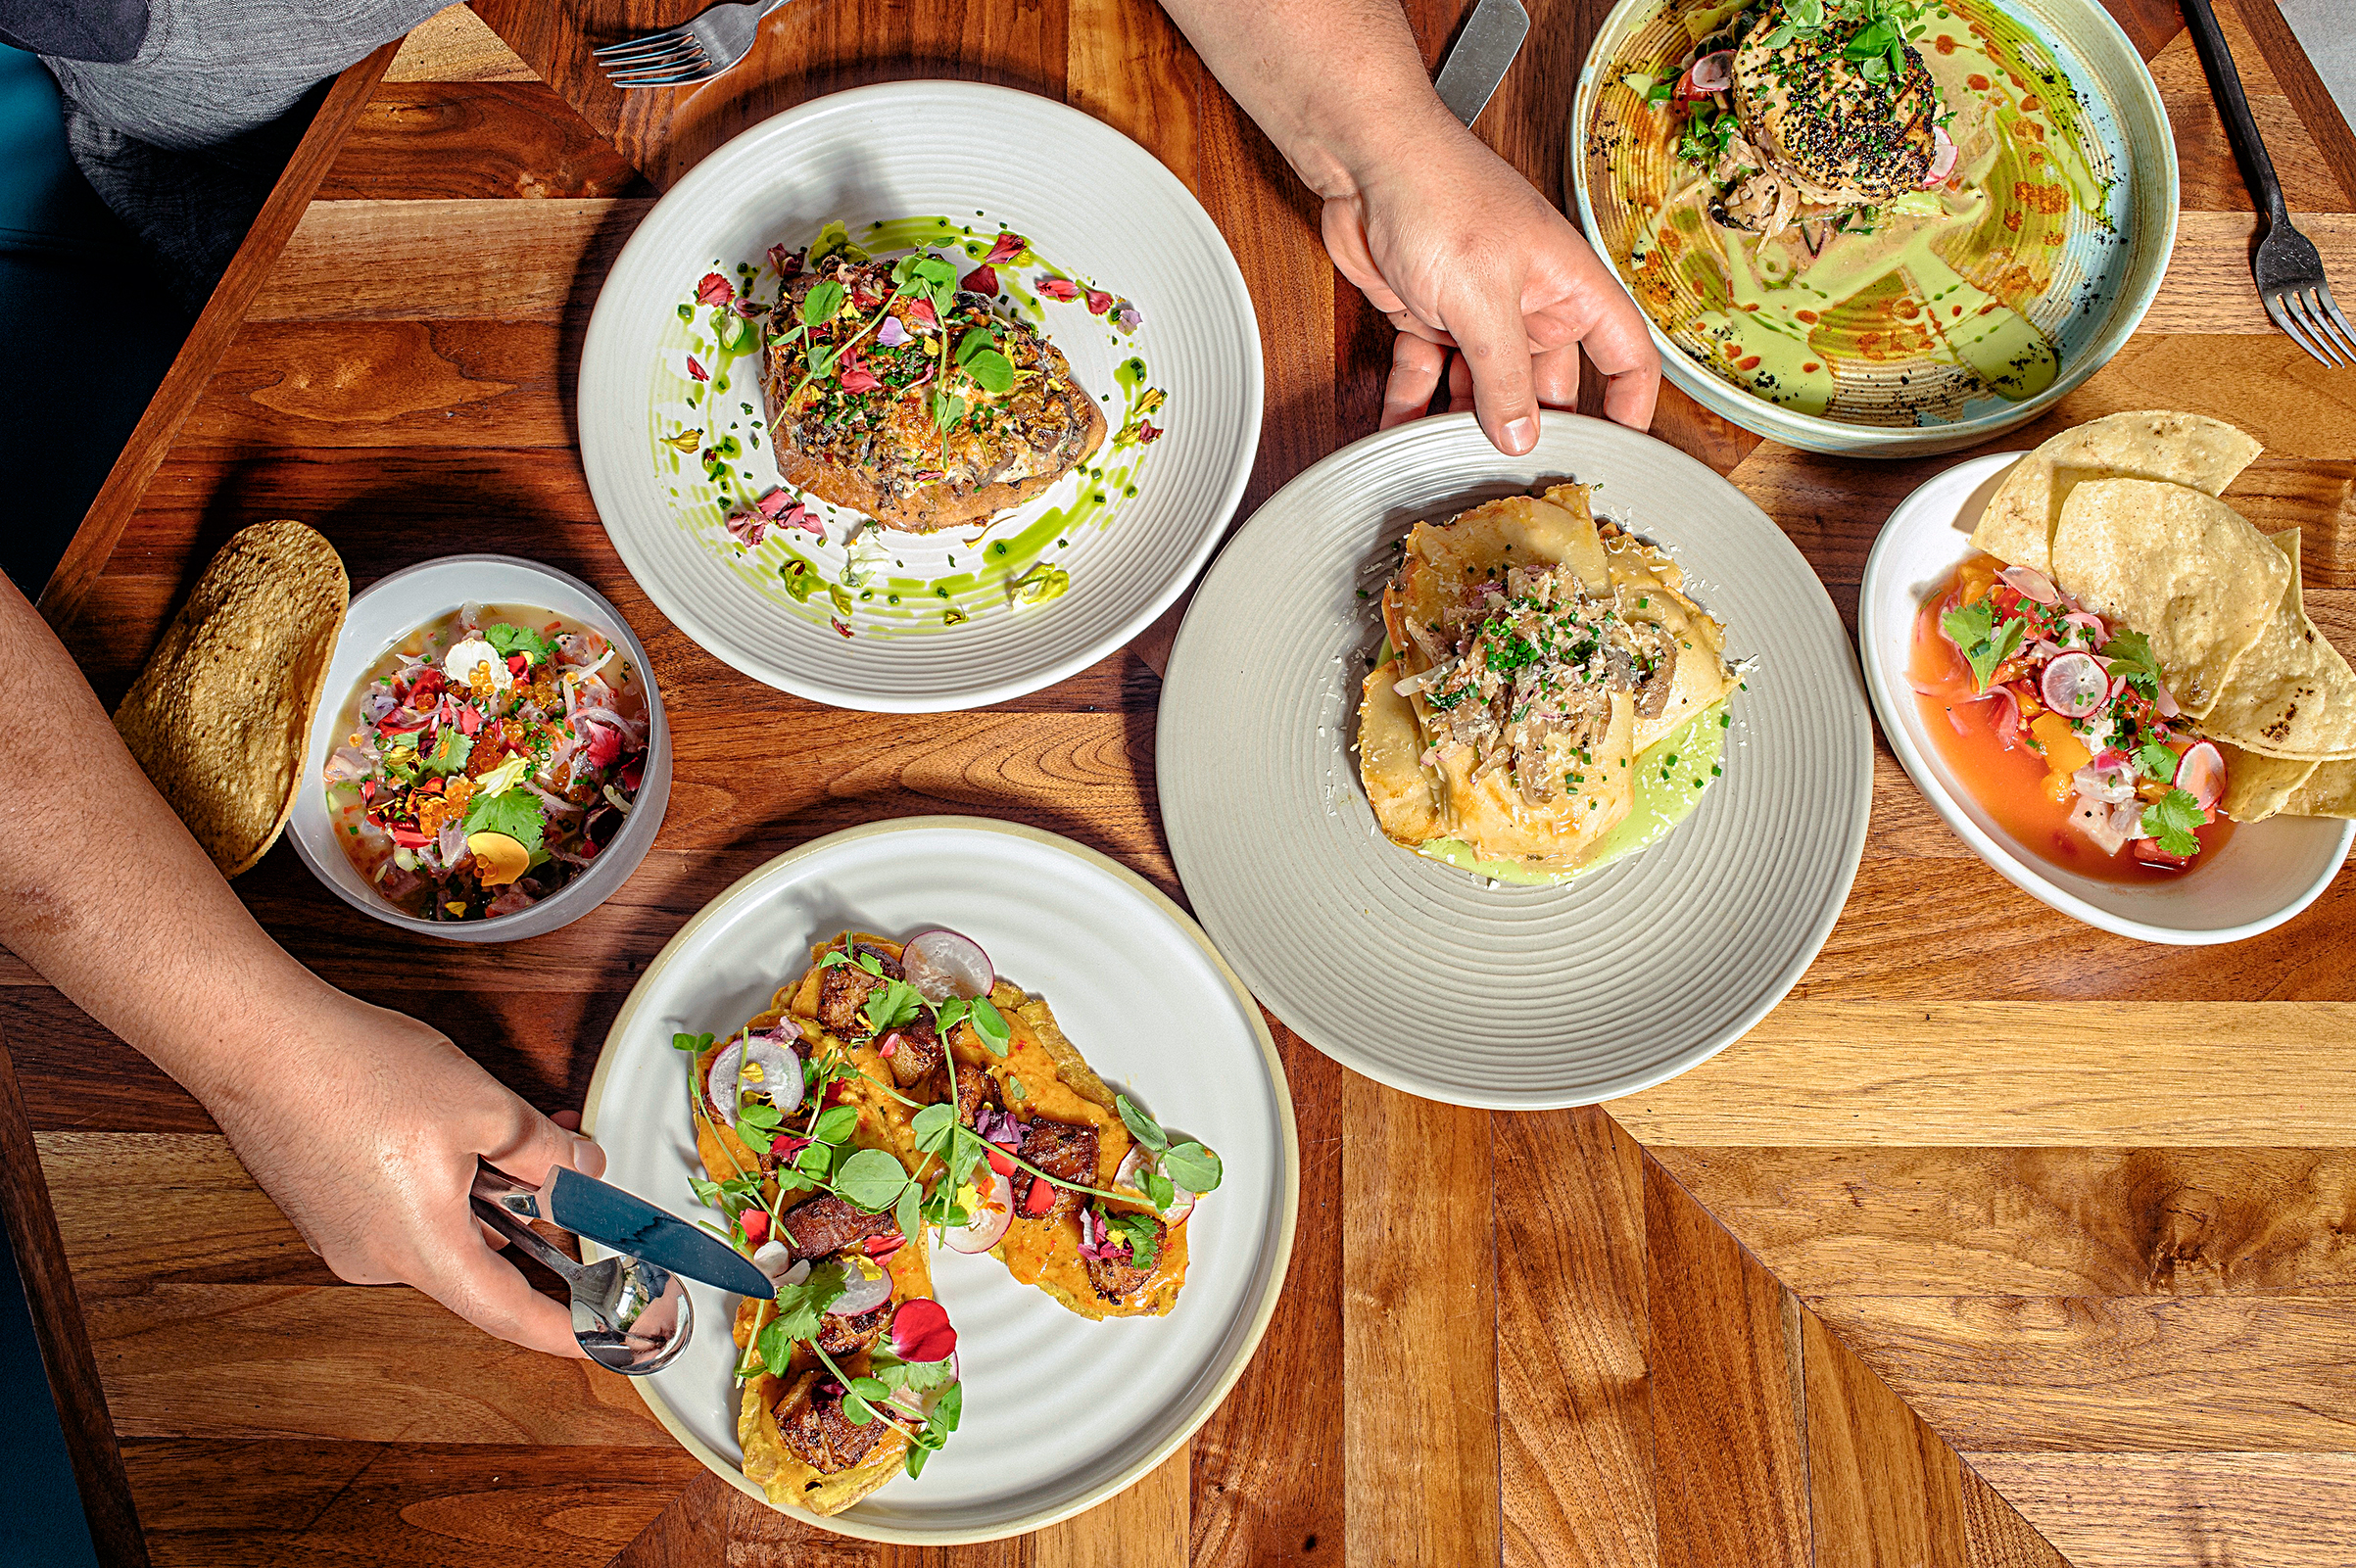 Pimento cheese tostones and other dishes at the Cortez, one of a number of new culture-crossing restaurants in the South